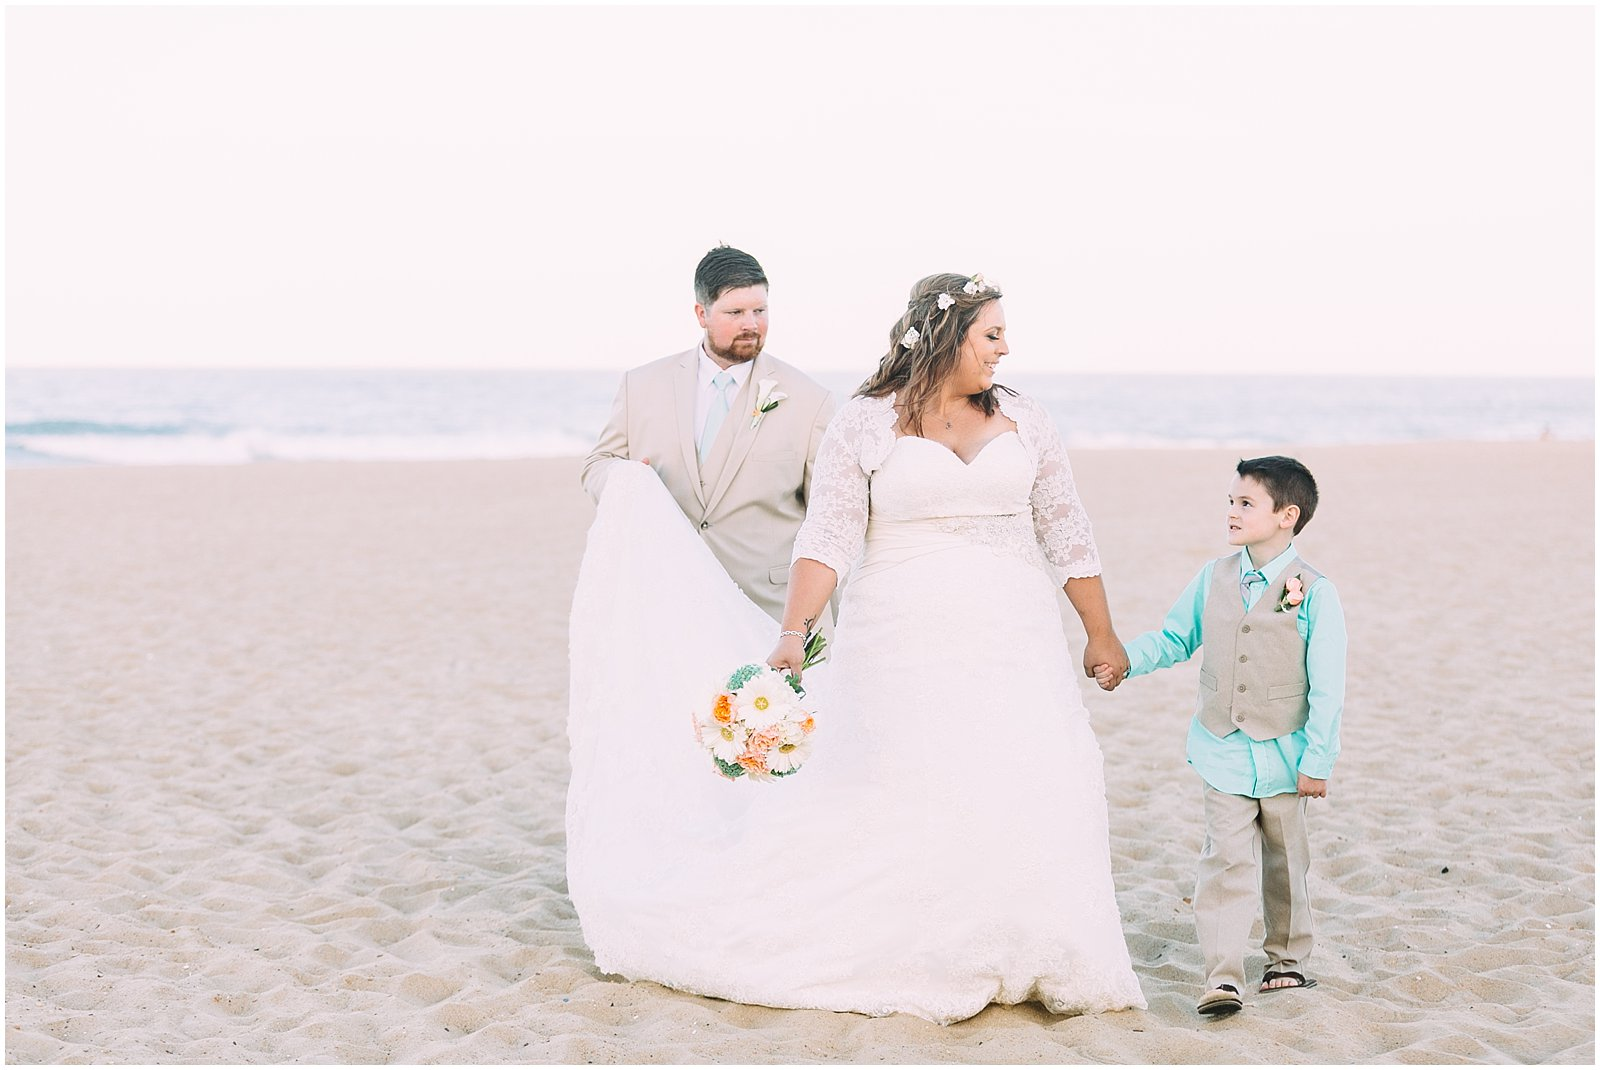 jessica_ryan_photography_wedding_virginia_beach_virginia_wedding_photographer_candid_wedding_photography_lifestyle_photojournalistic_real_moments_0088